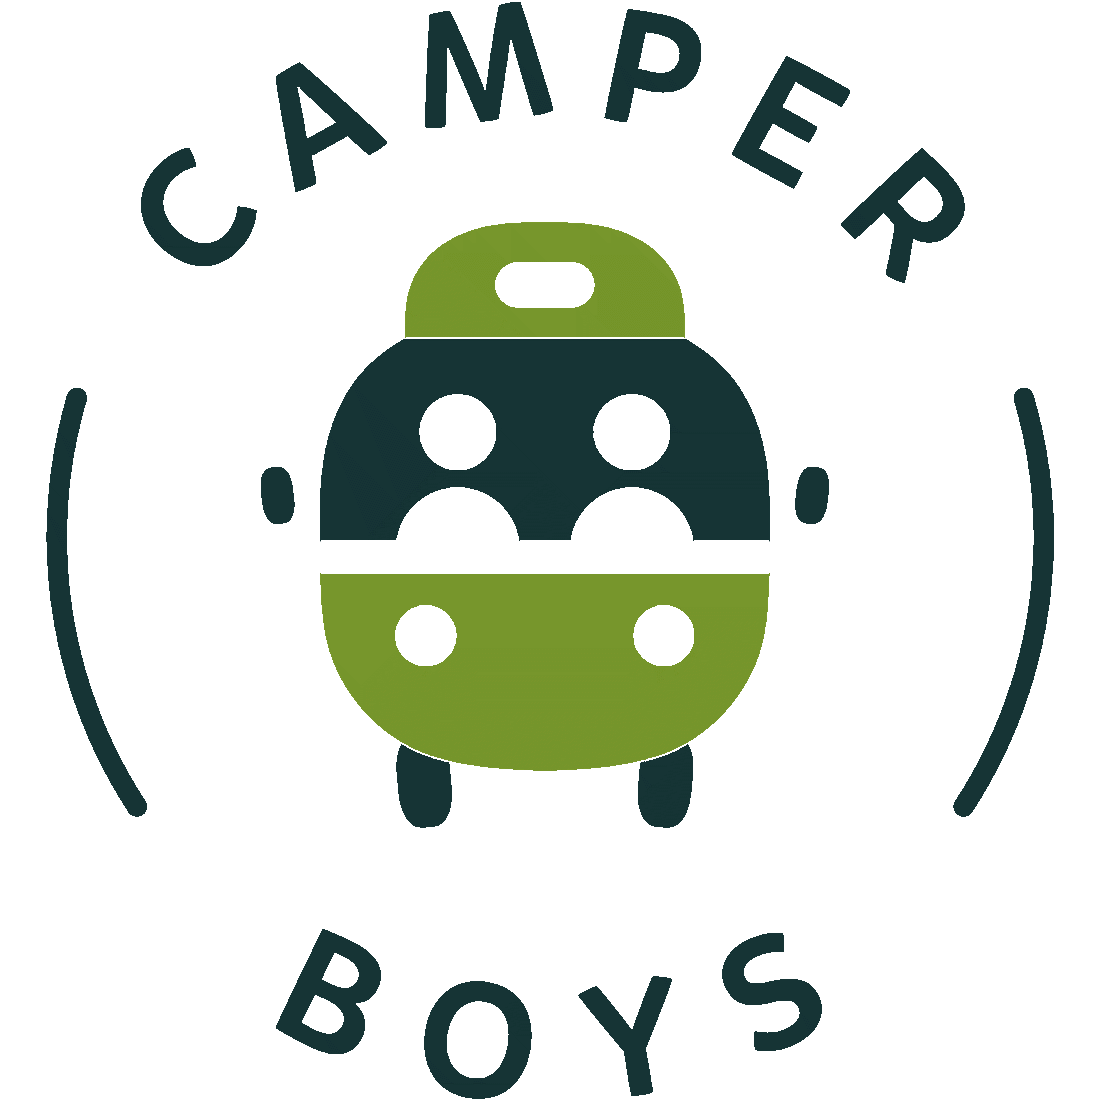 Camper Boys Kooperationspartner